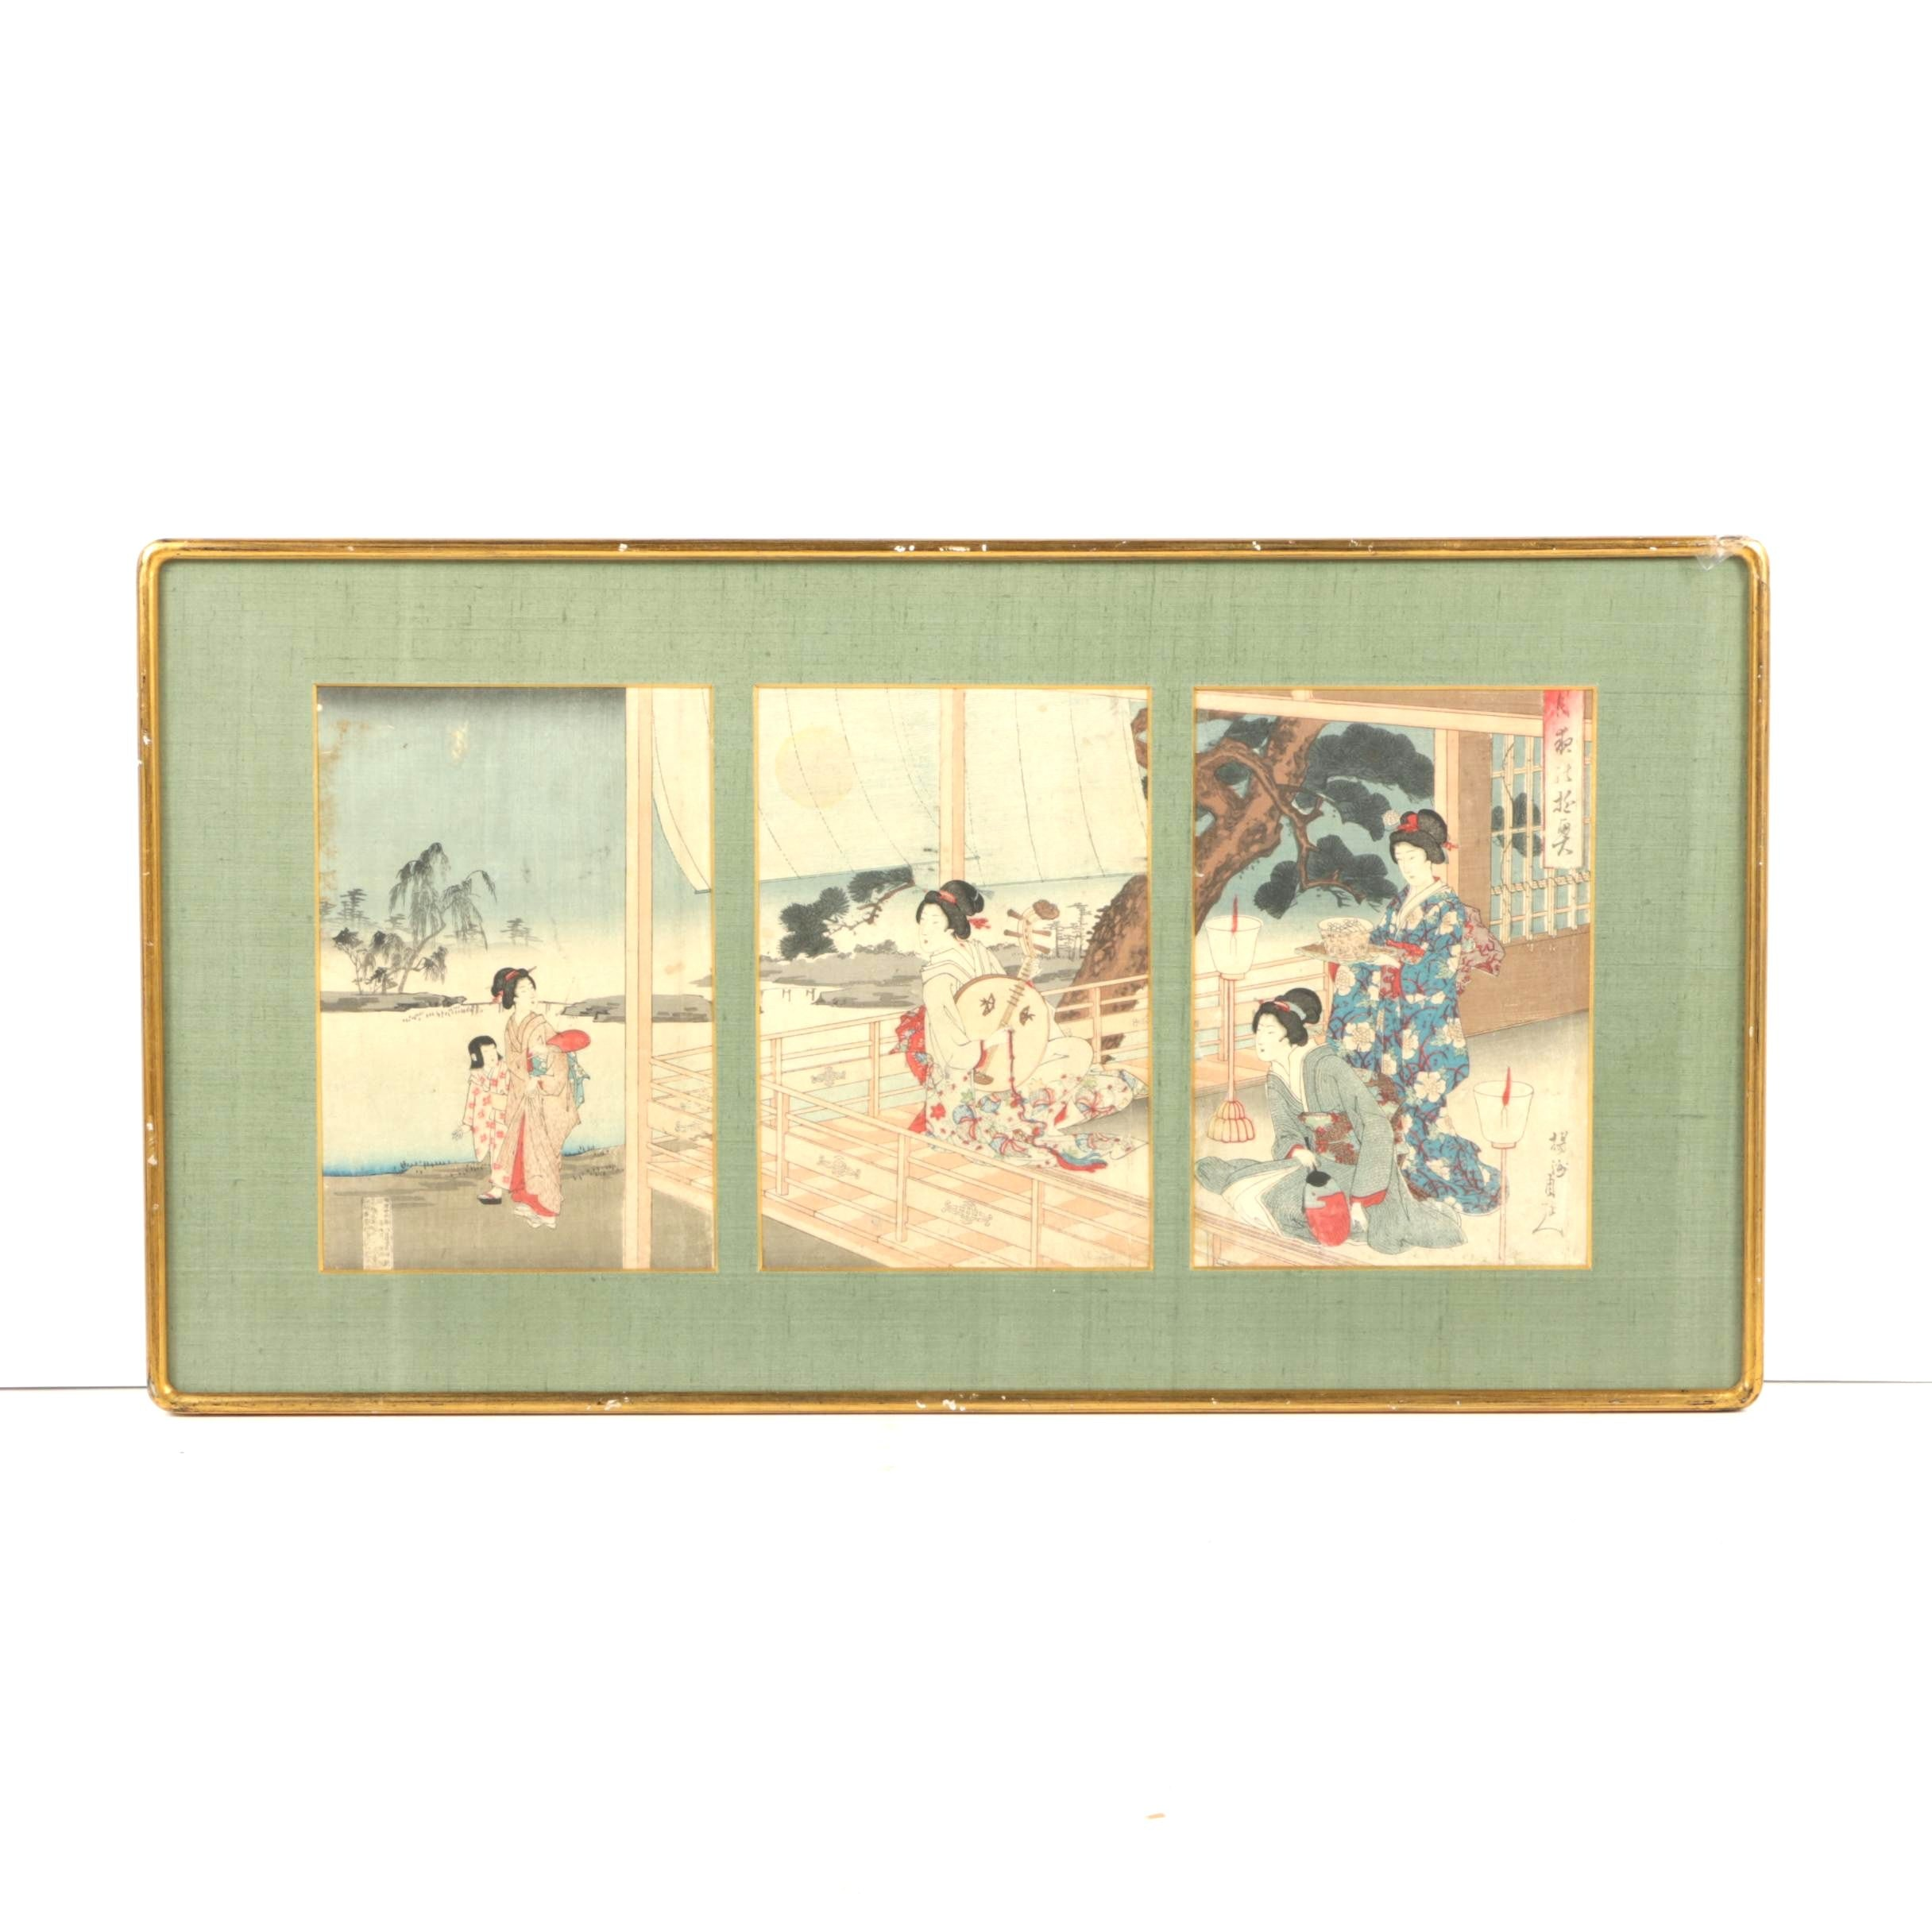 Antique Japanese Woodblock Triptych After Toyohara Chikanobu of a Court Scene